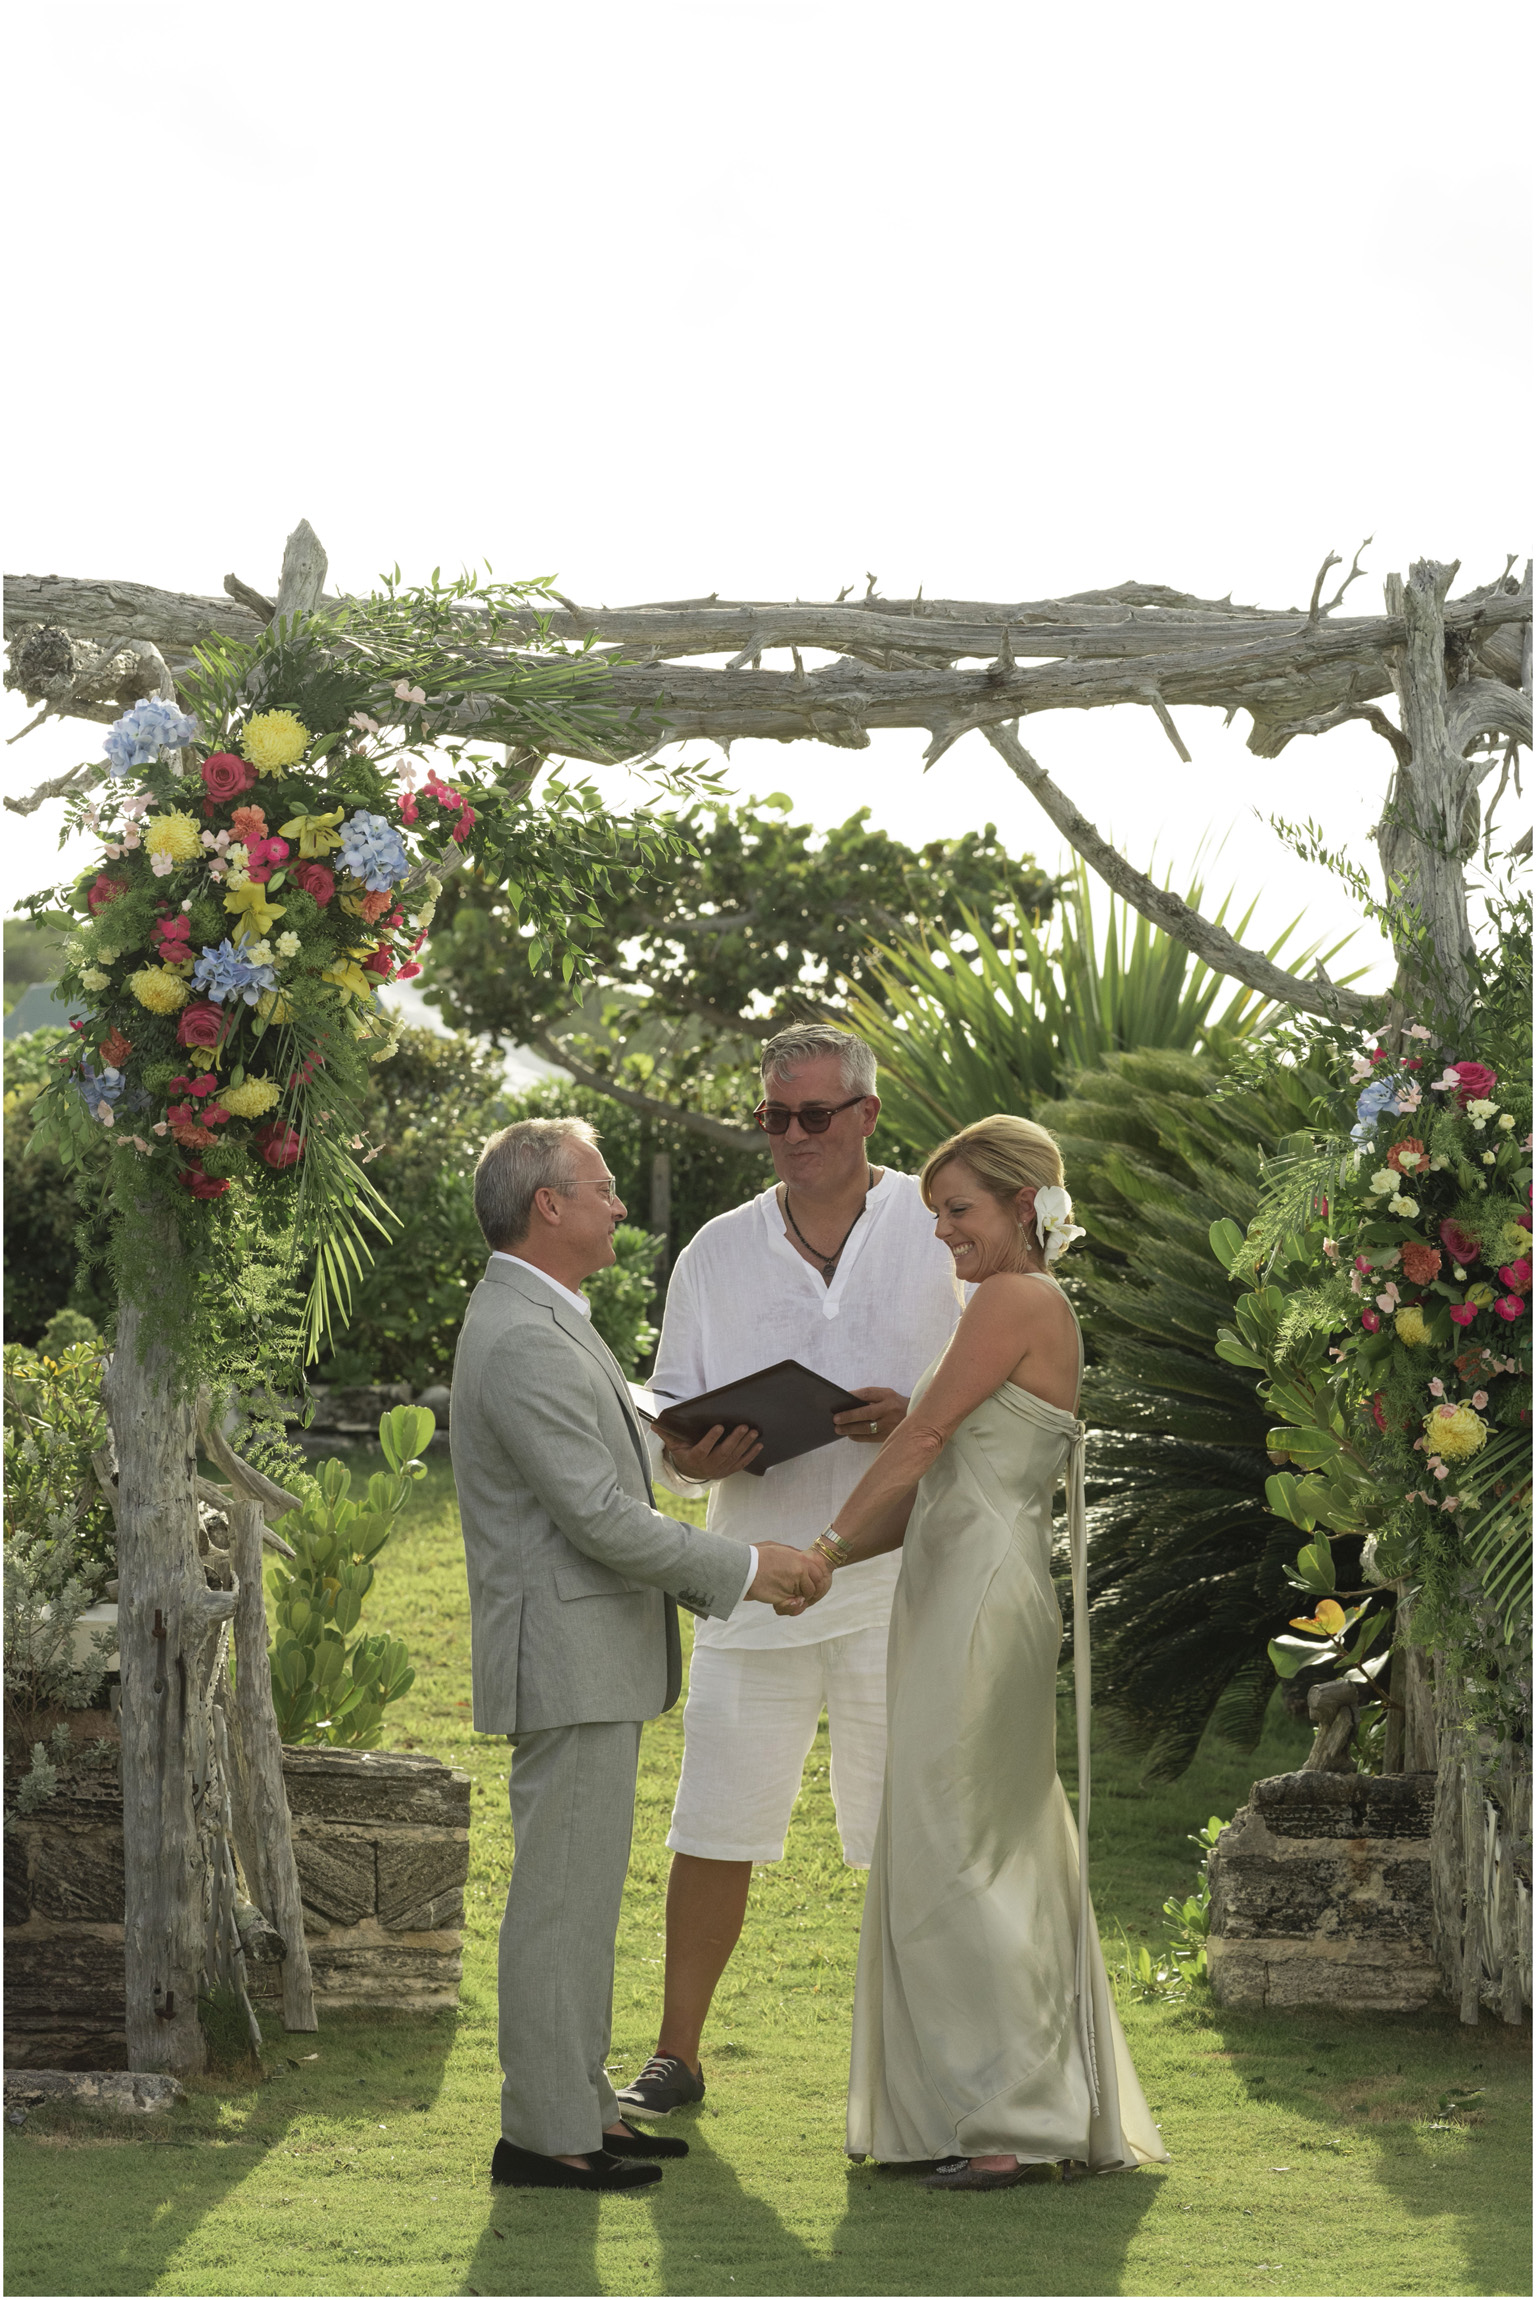 ©FianderFoto_Bermuda_Wedding_Photographer_Long_Island_Bermuda_Nancy_Ray_067.jpg